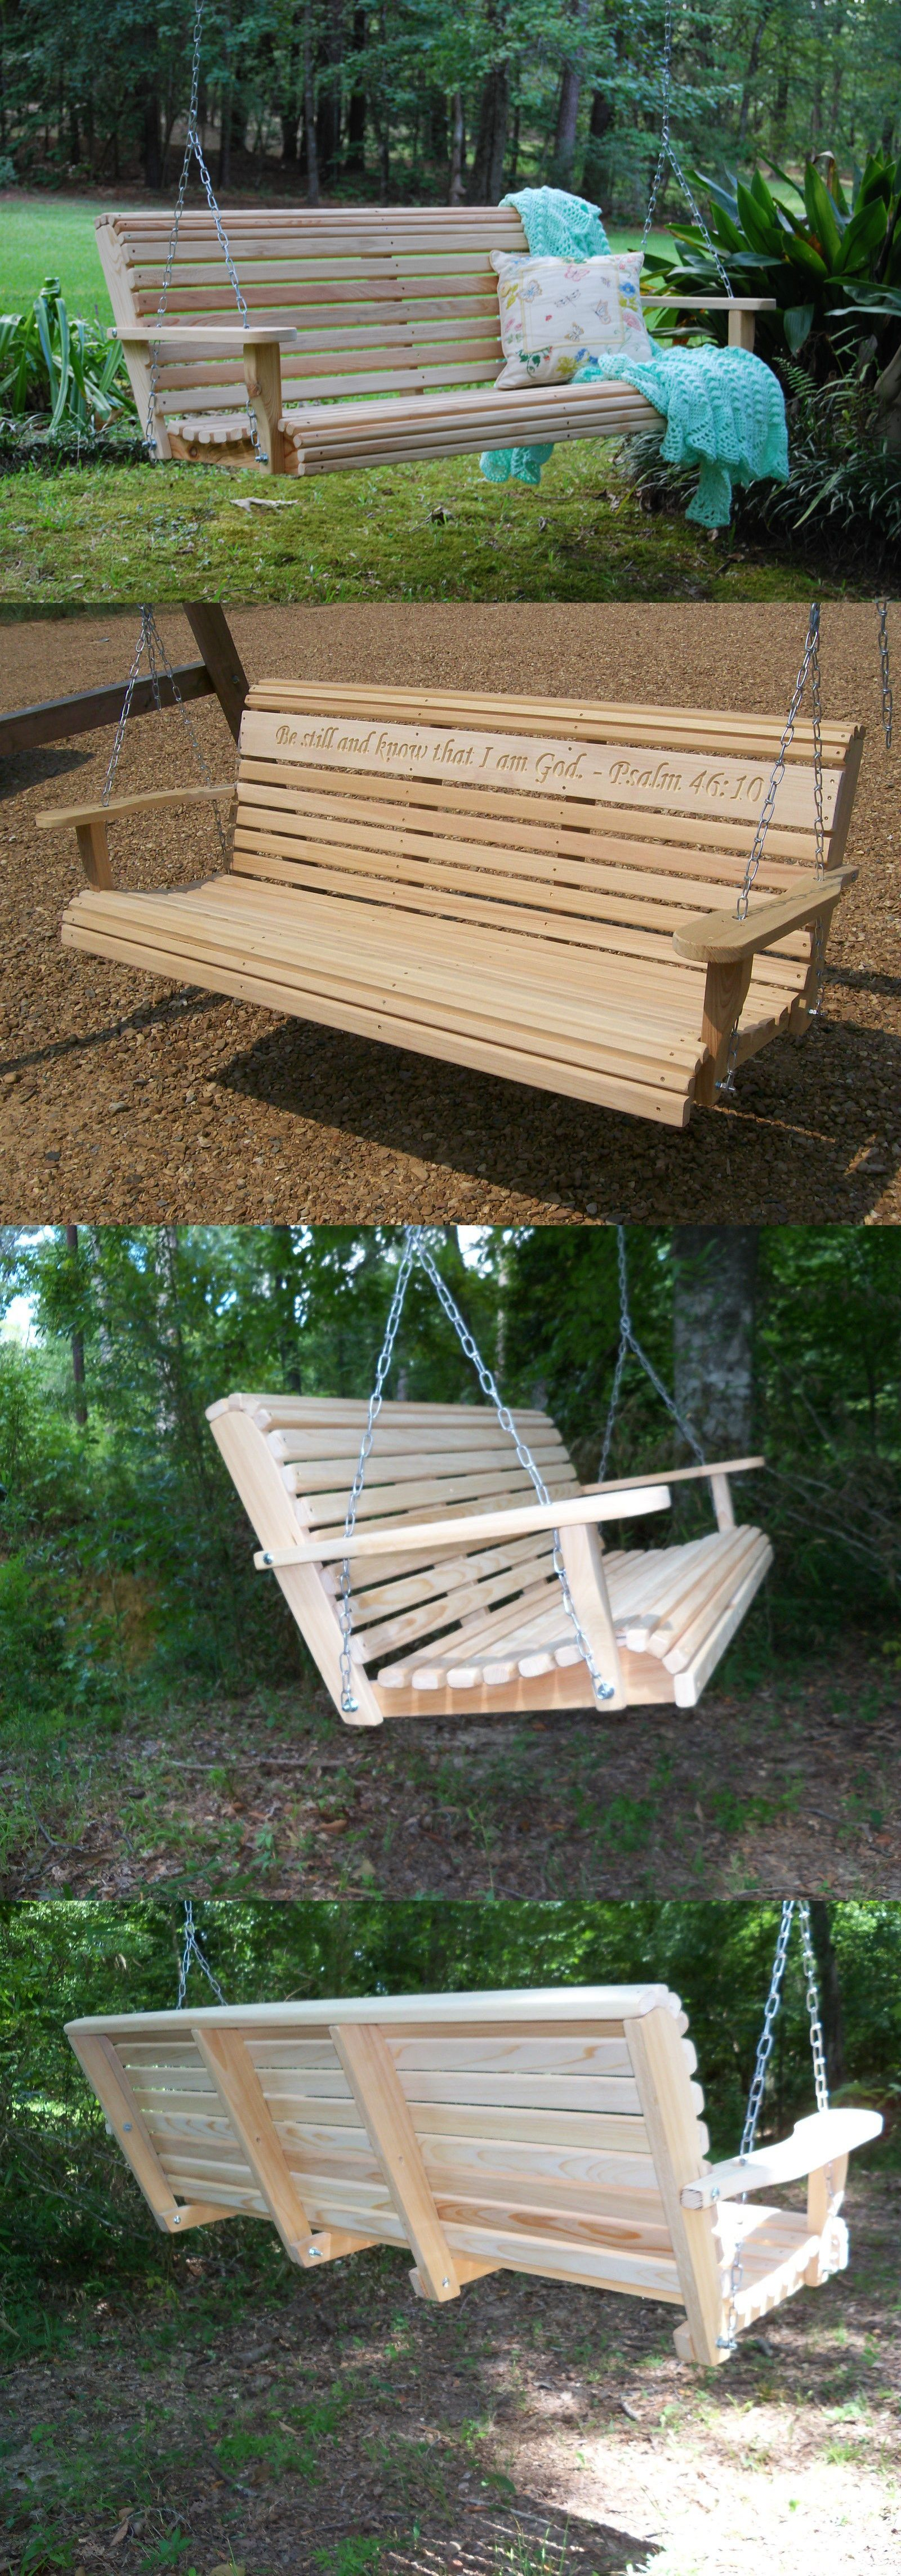 Swings ft cypress wood deluxe roll porch bench swing with